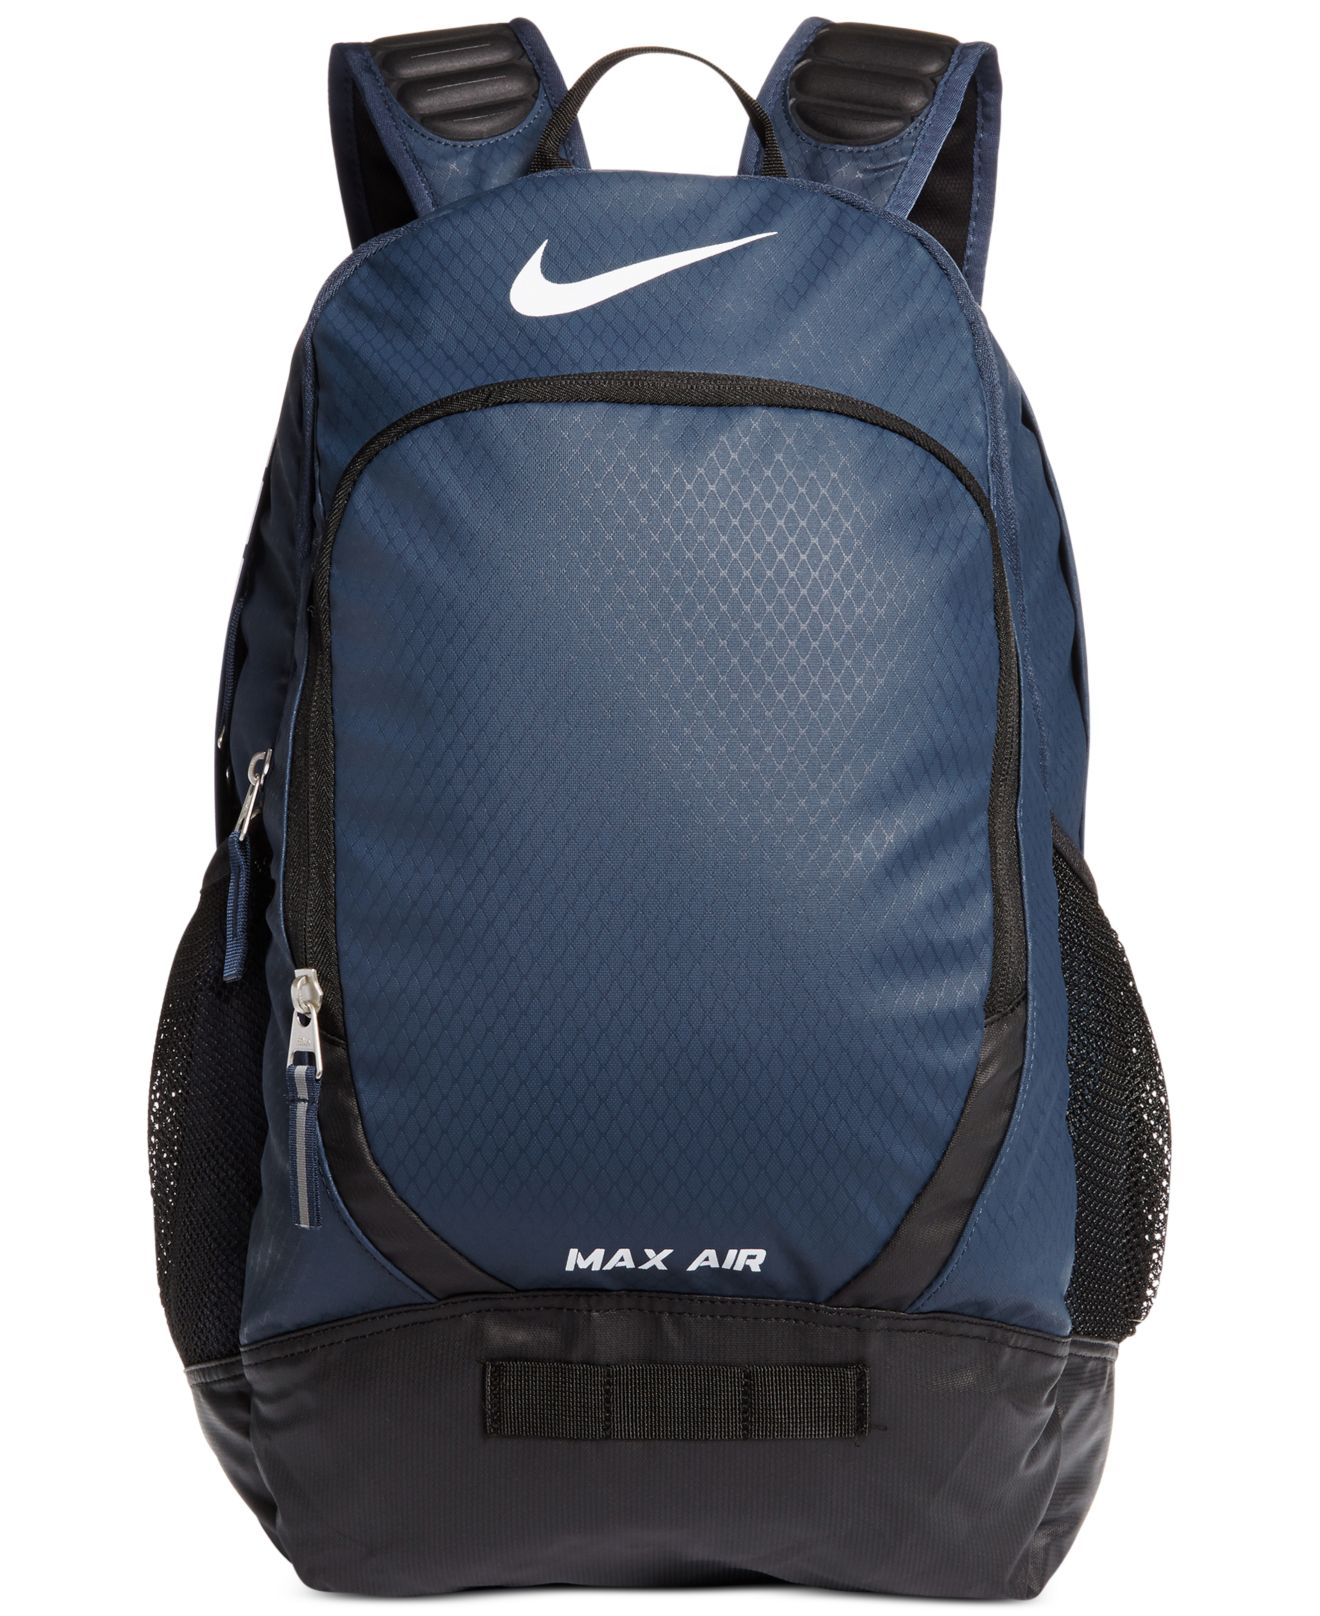 13e216b15b8f ... release date lyst nike max air team training large backpack in blue for  men 89767 a54bc